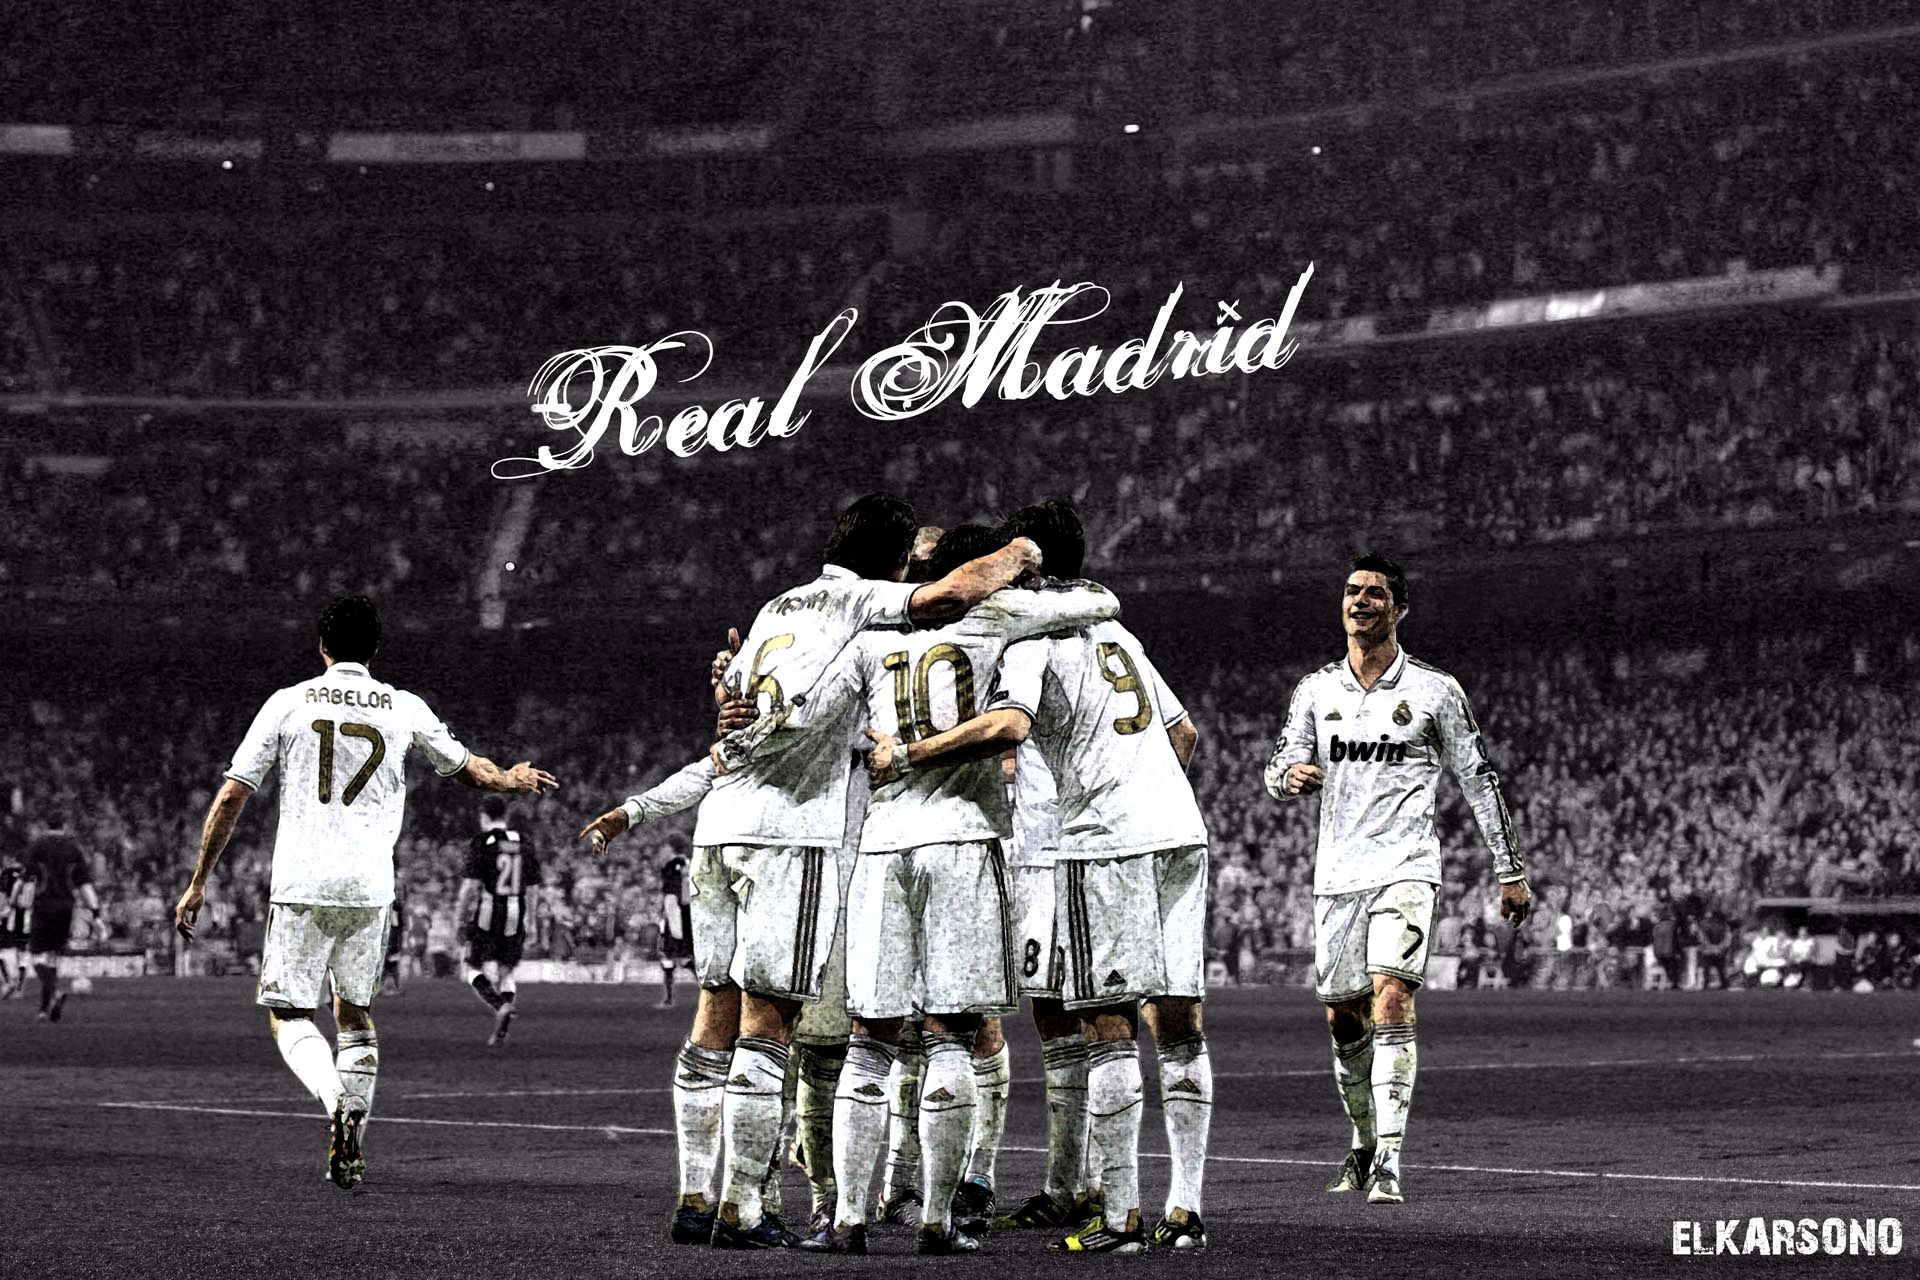 Wallpaper 4k Real Madrid Gallery Di 2020